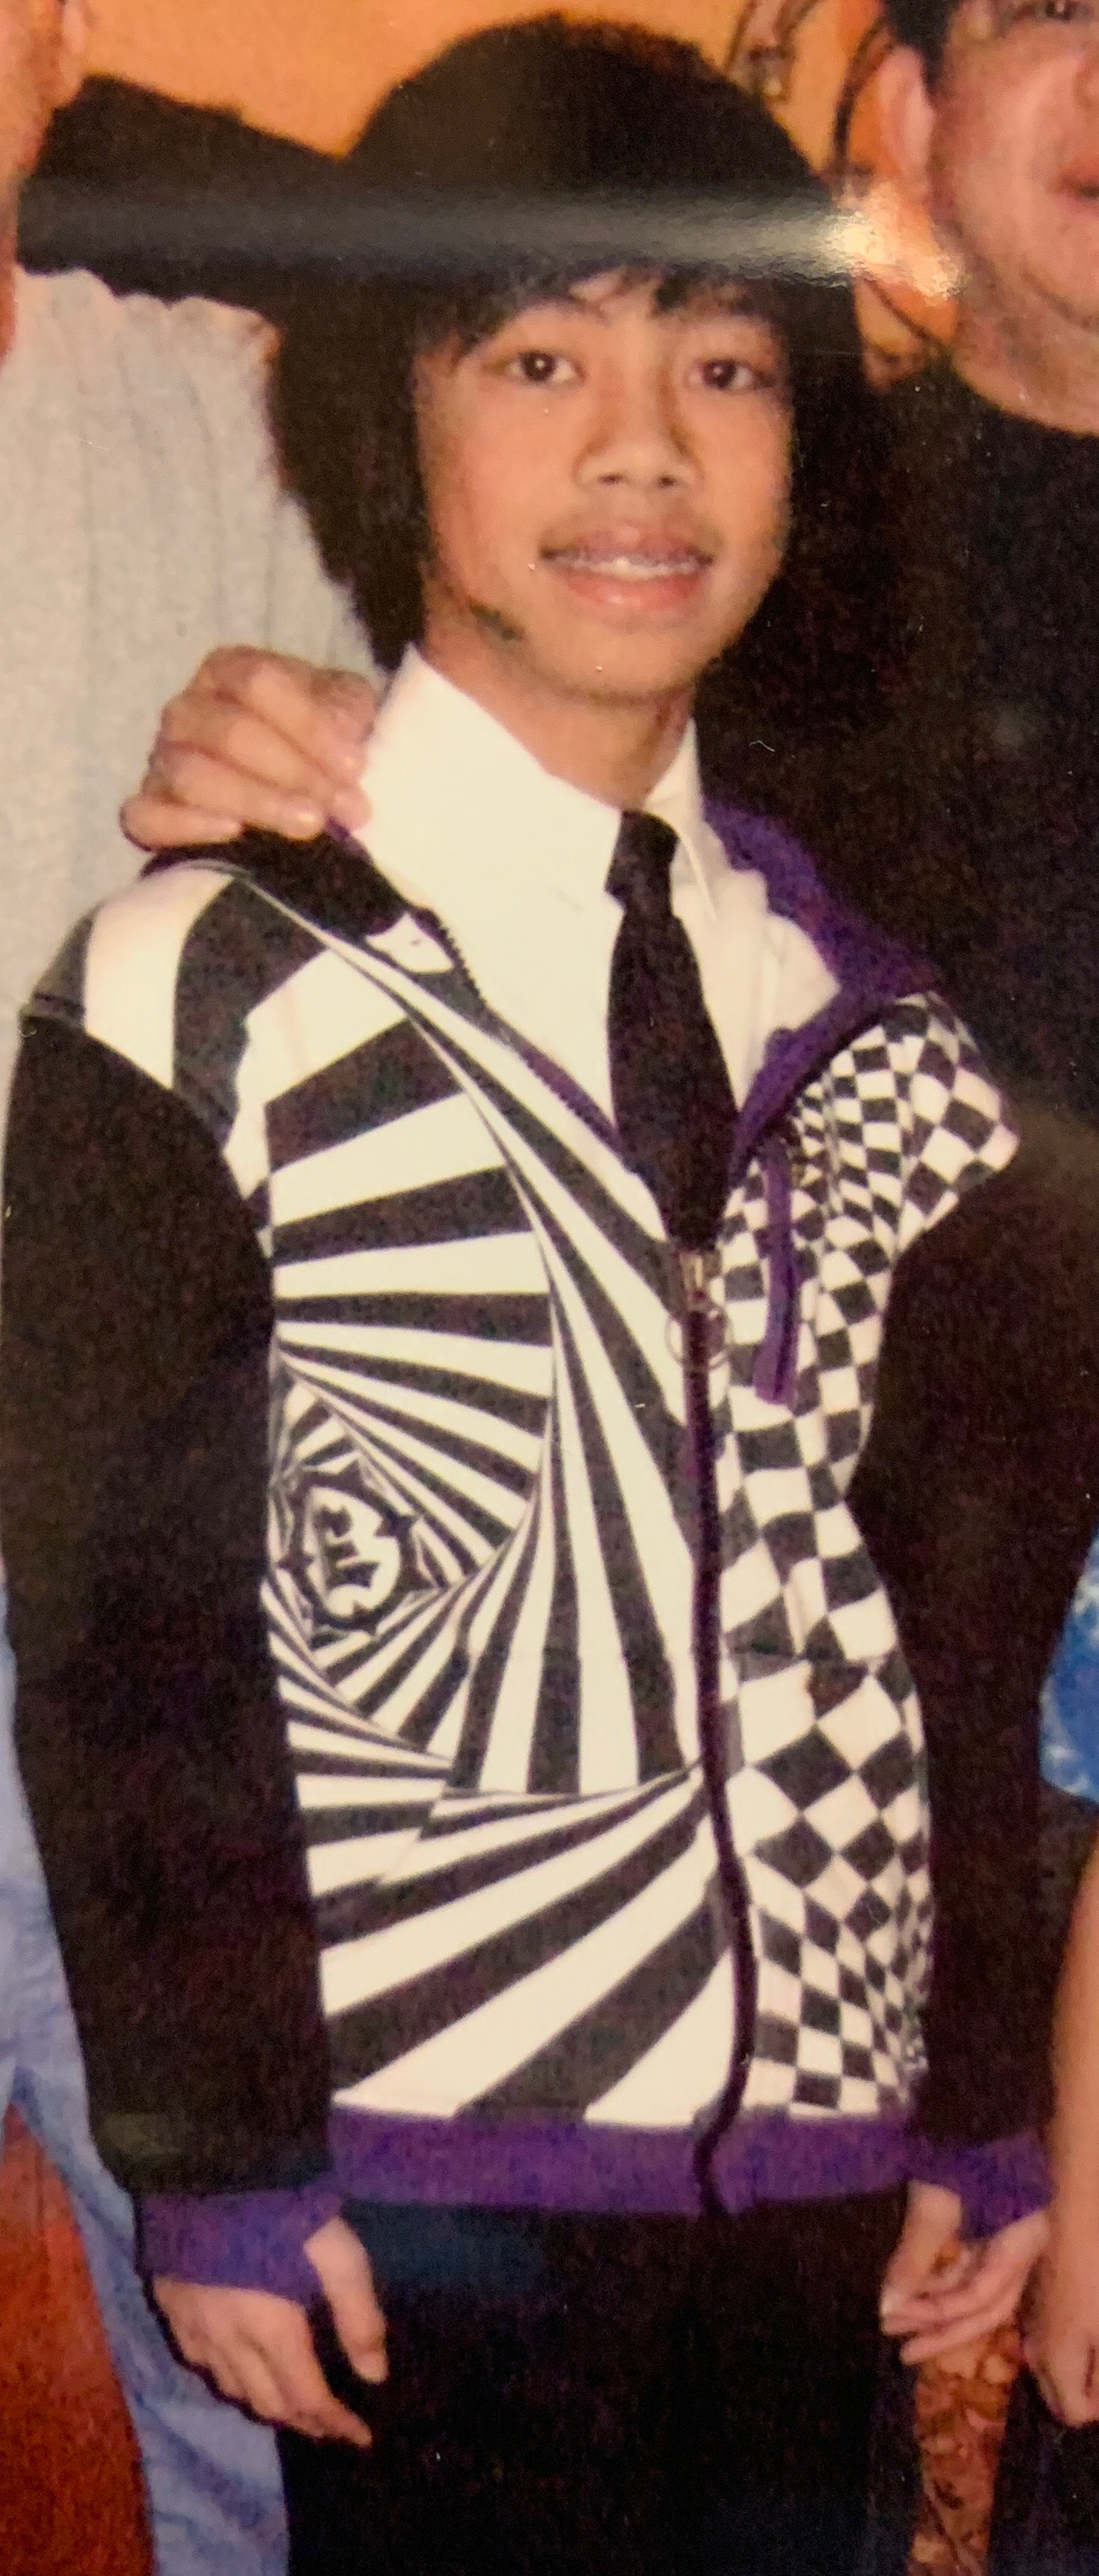 Yet another graphic hoodie with thumb holes. 7th grade Angelo thought the black, white and purple combination looked good.